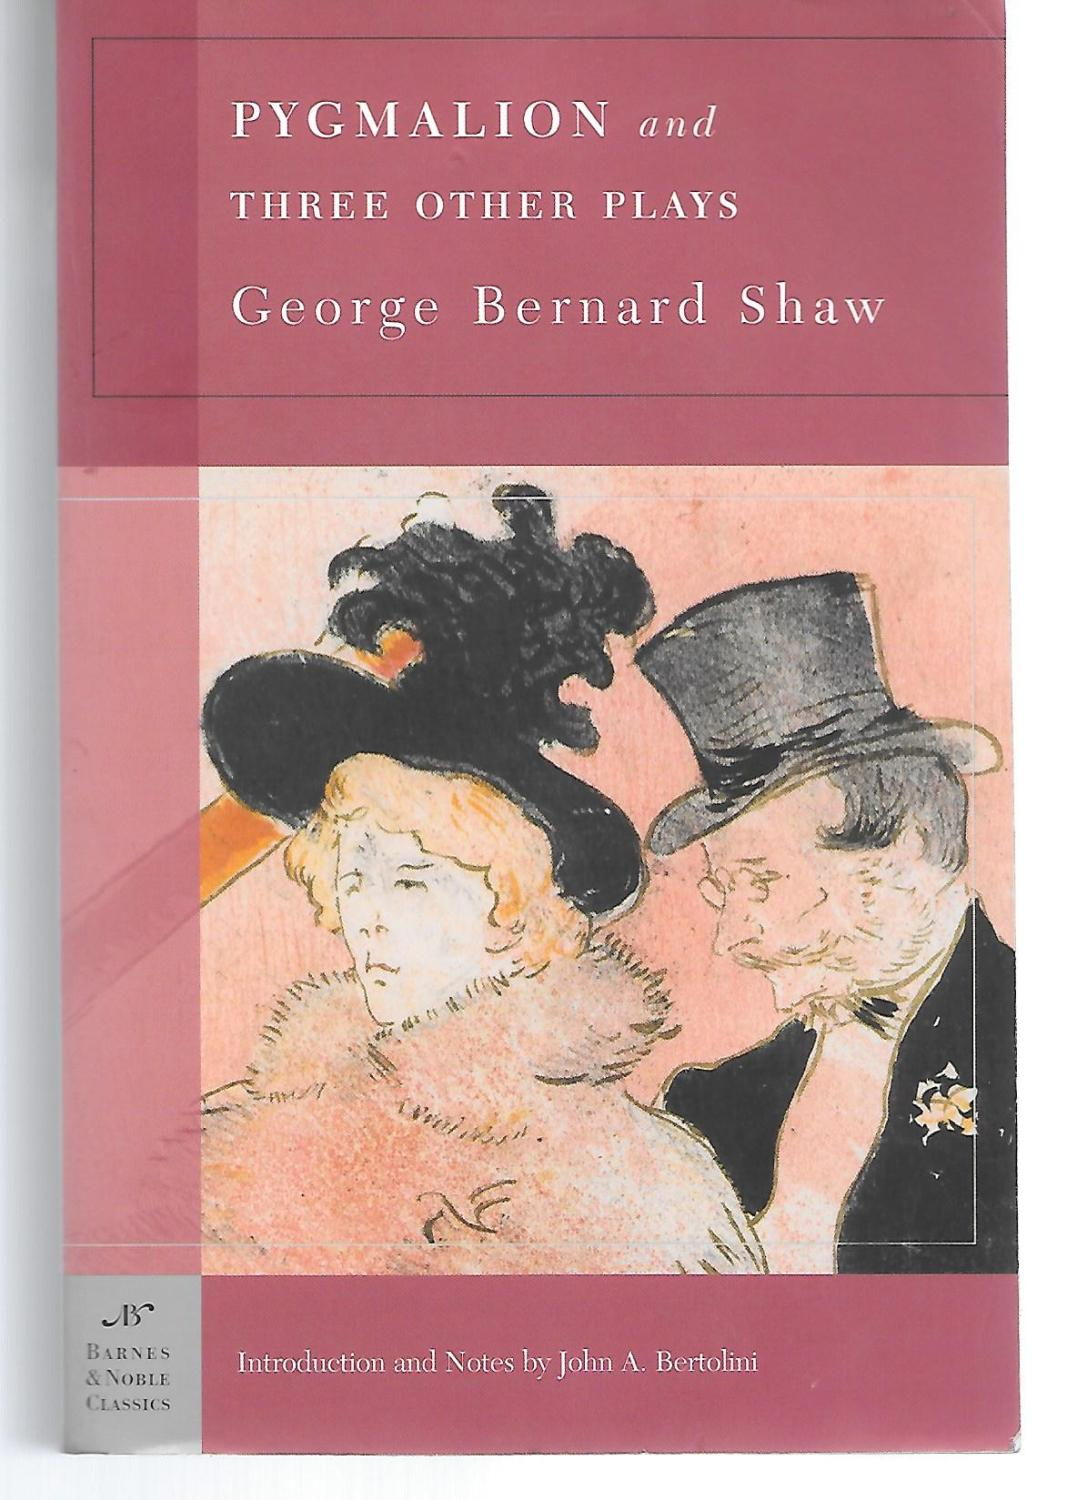 bernard shaw pyg on summary narrative of sojourner truth  pyg on by george bernard shaw abebooks